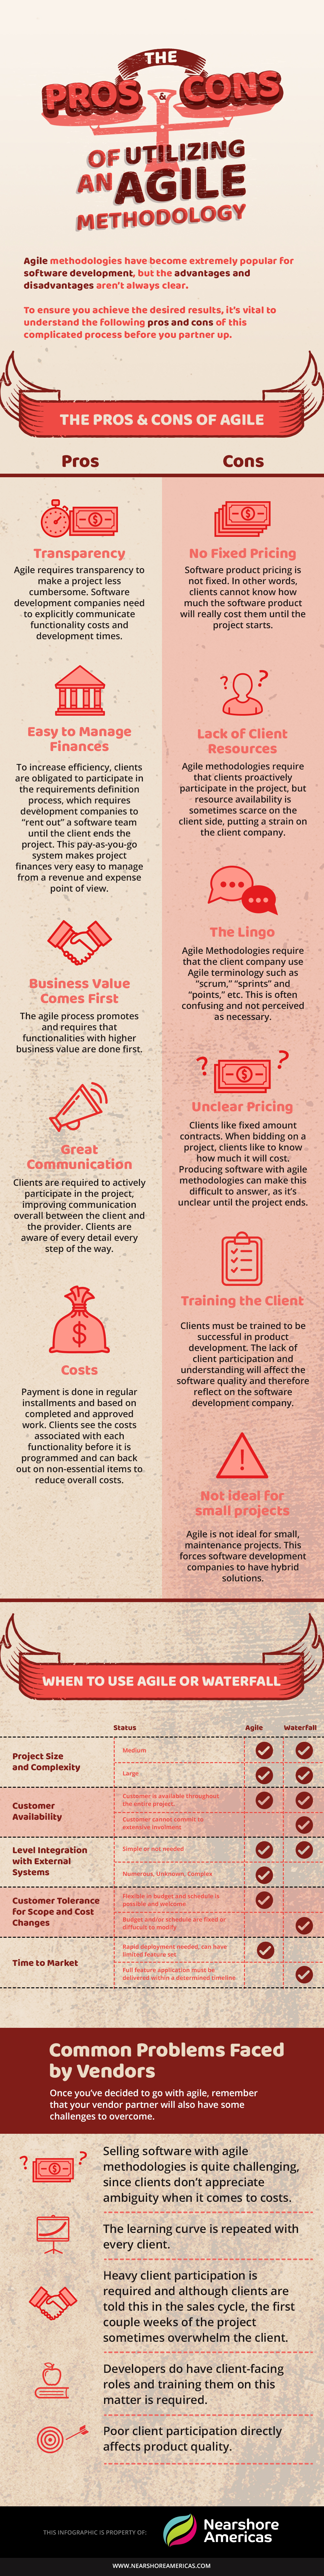 Infographic: The Pros & Cons of Utilizing an Agile Methodology